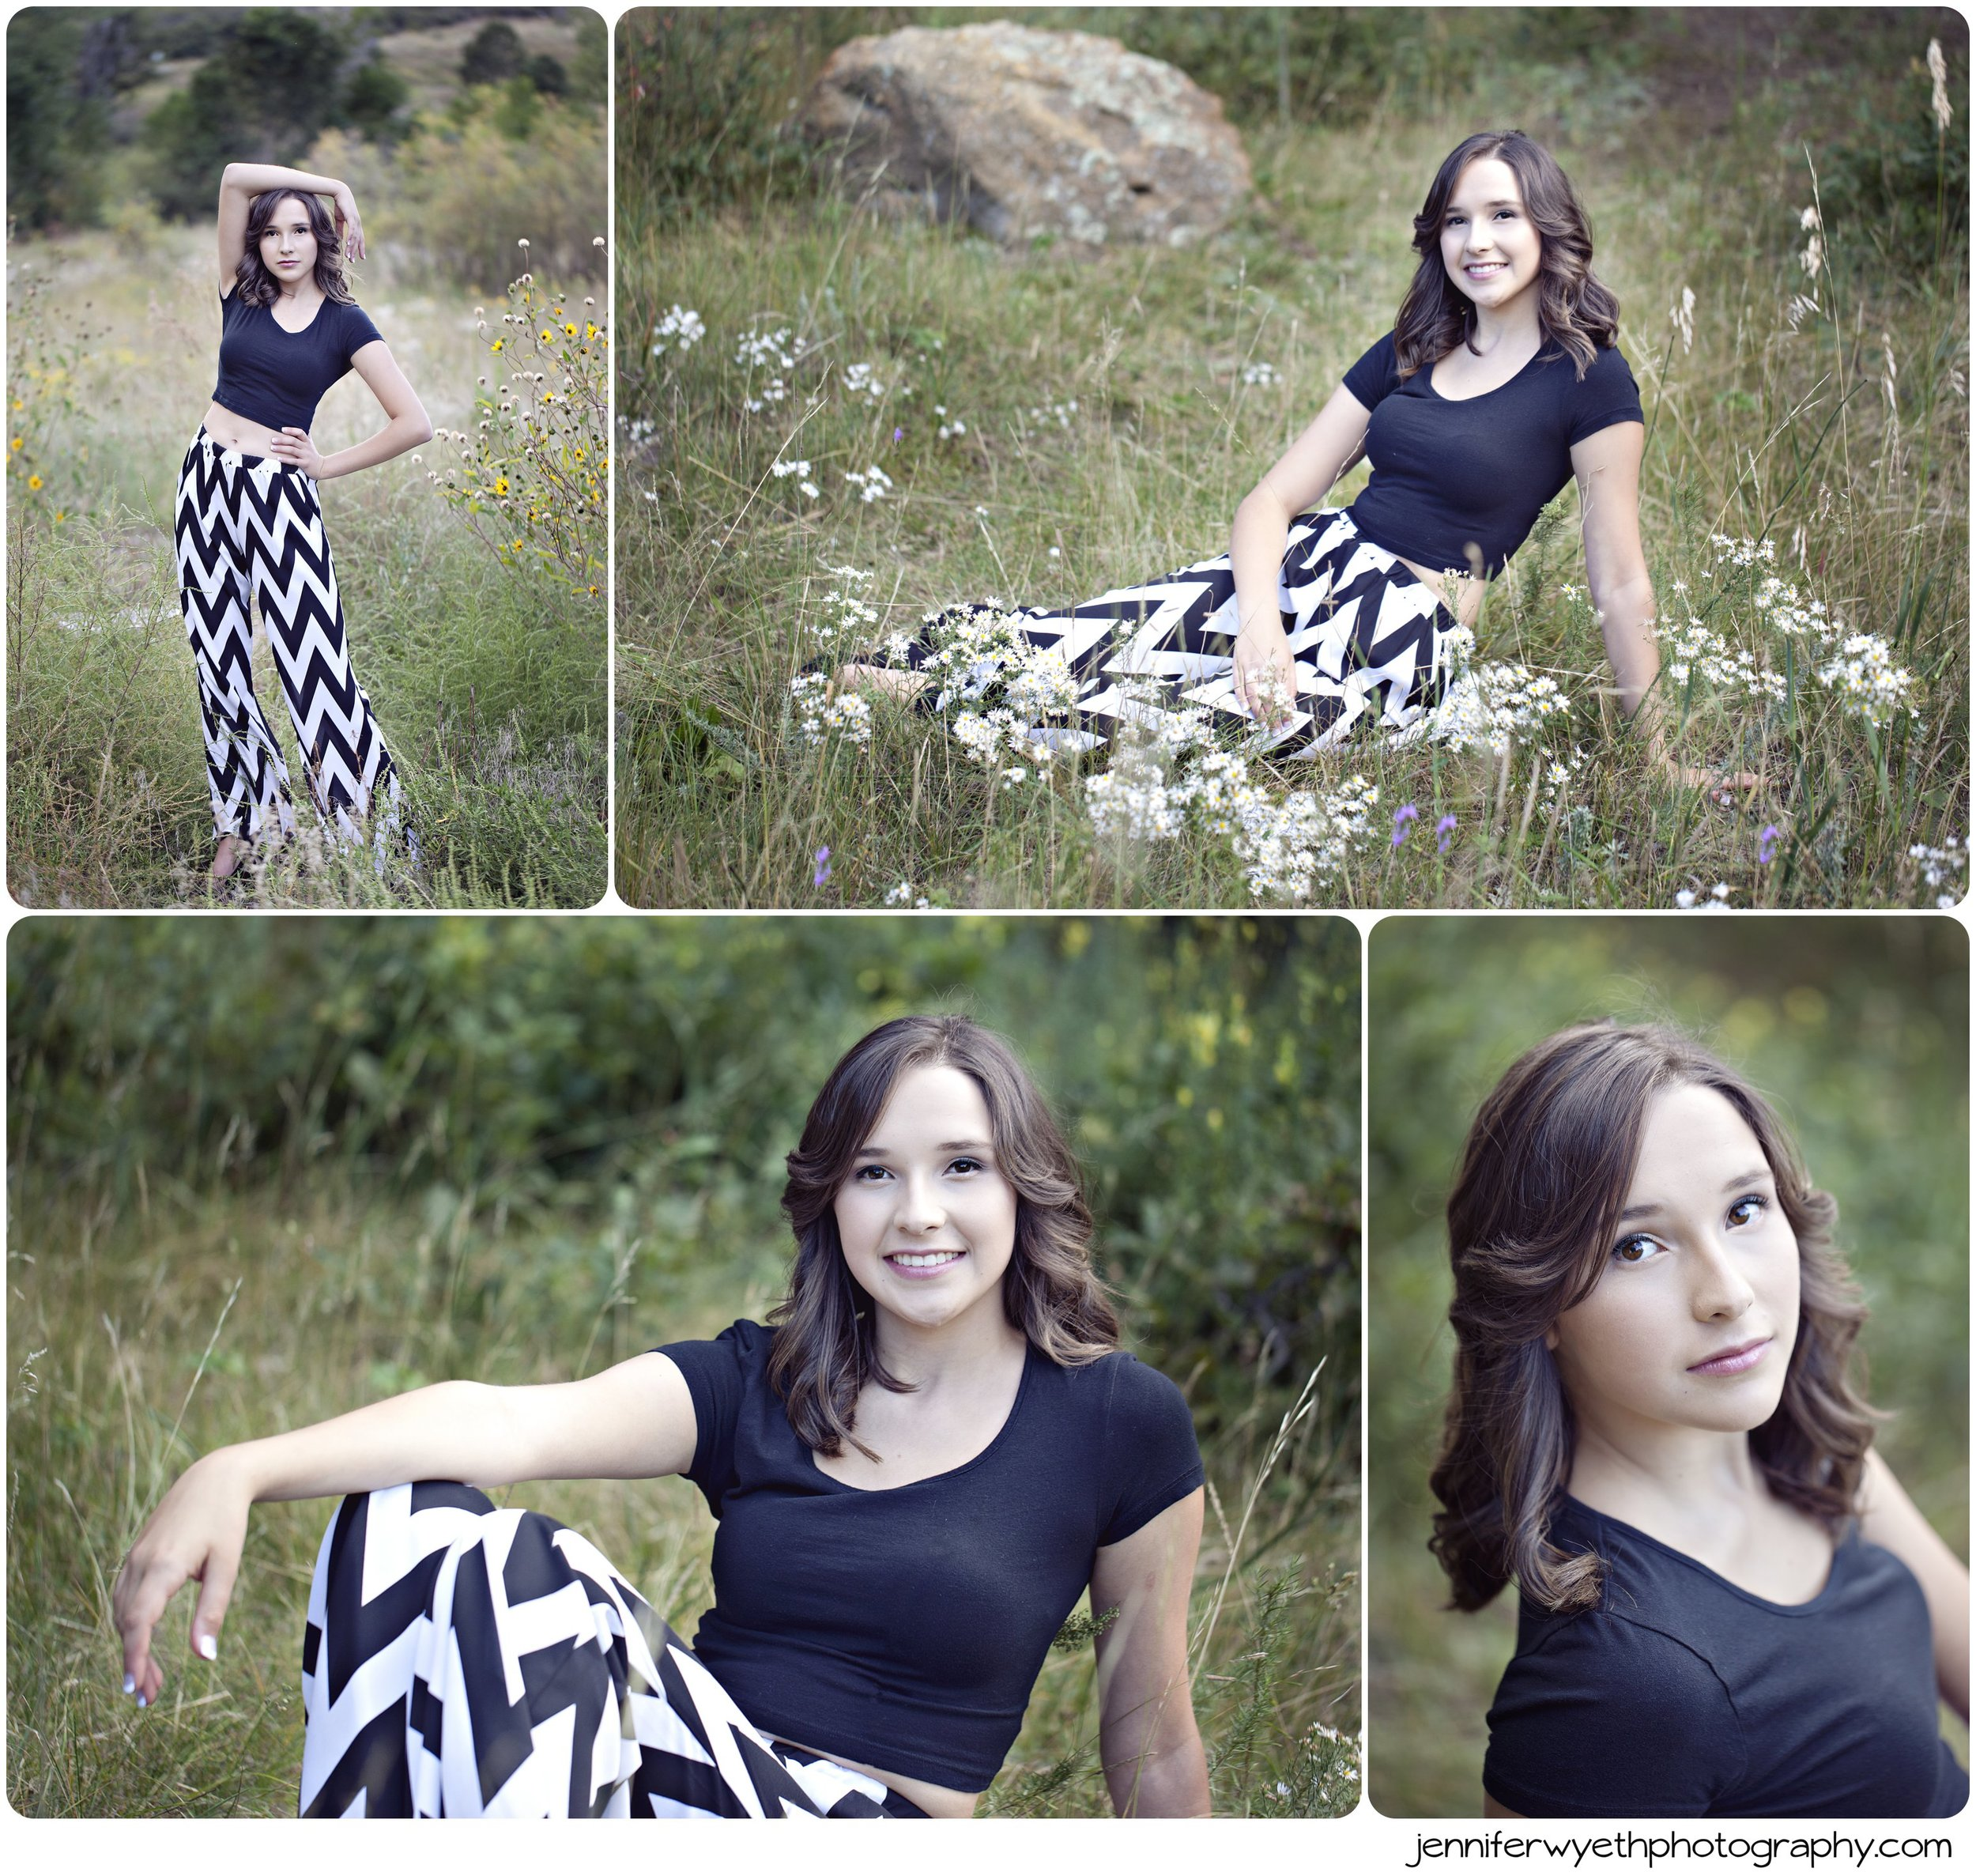 black and white chevron pants contrast the natural setting of picture